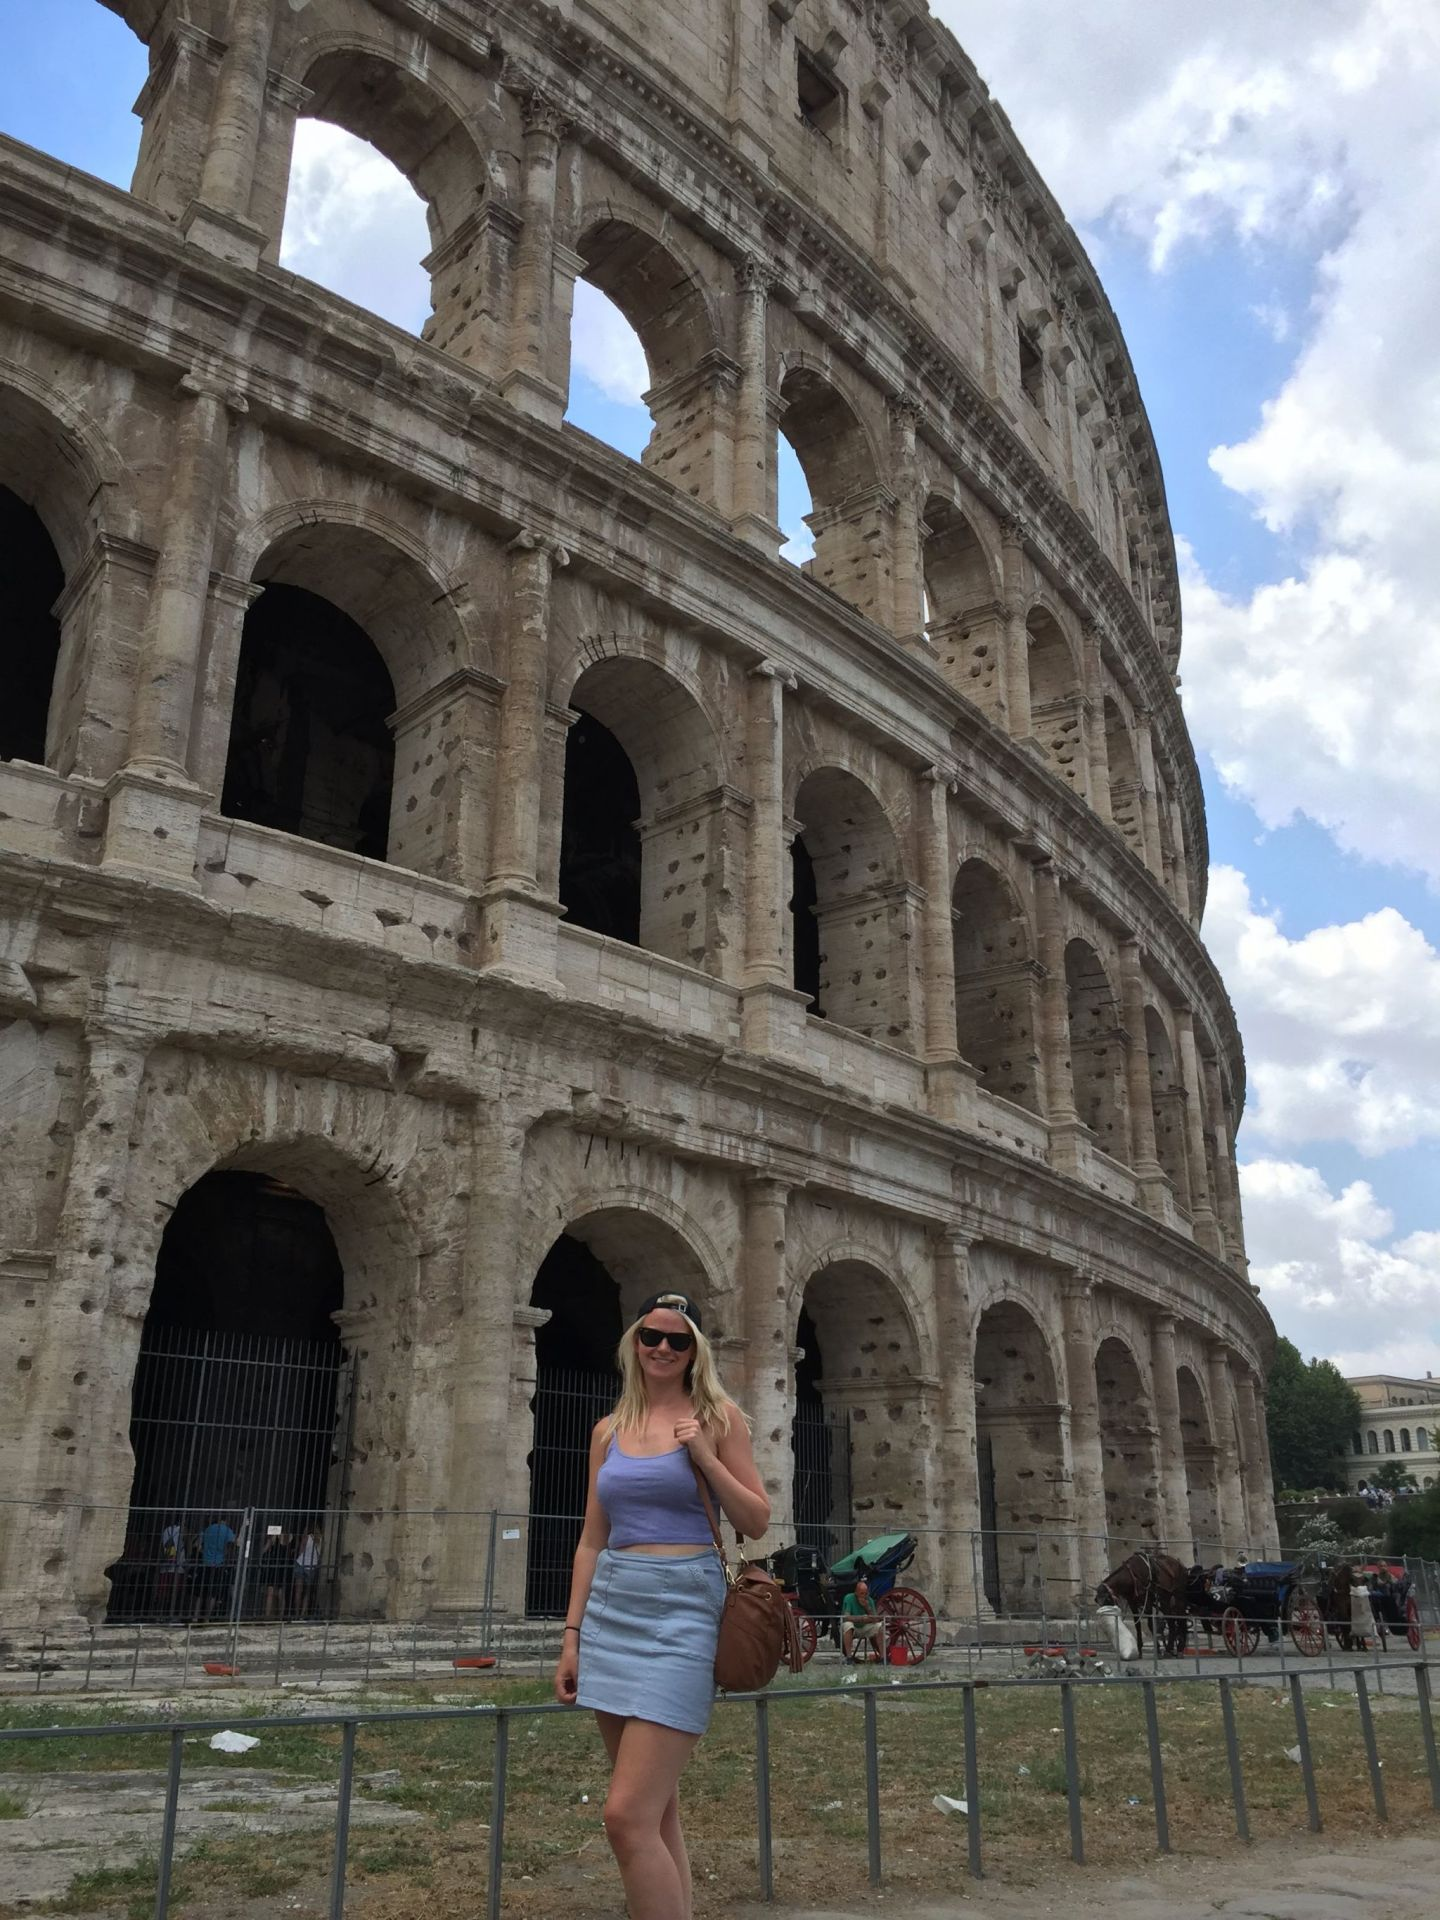 Laura and the Colosseum, Rome